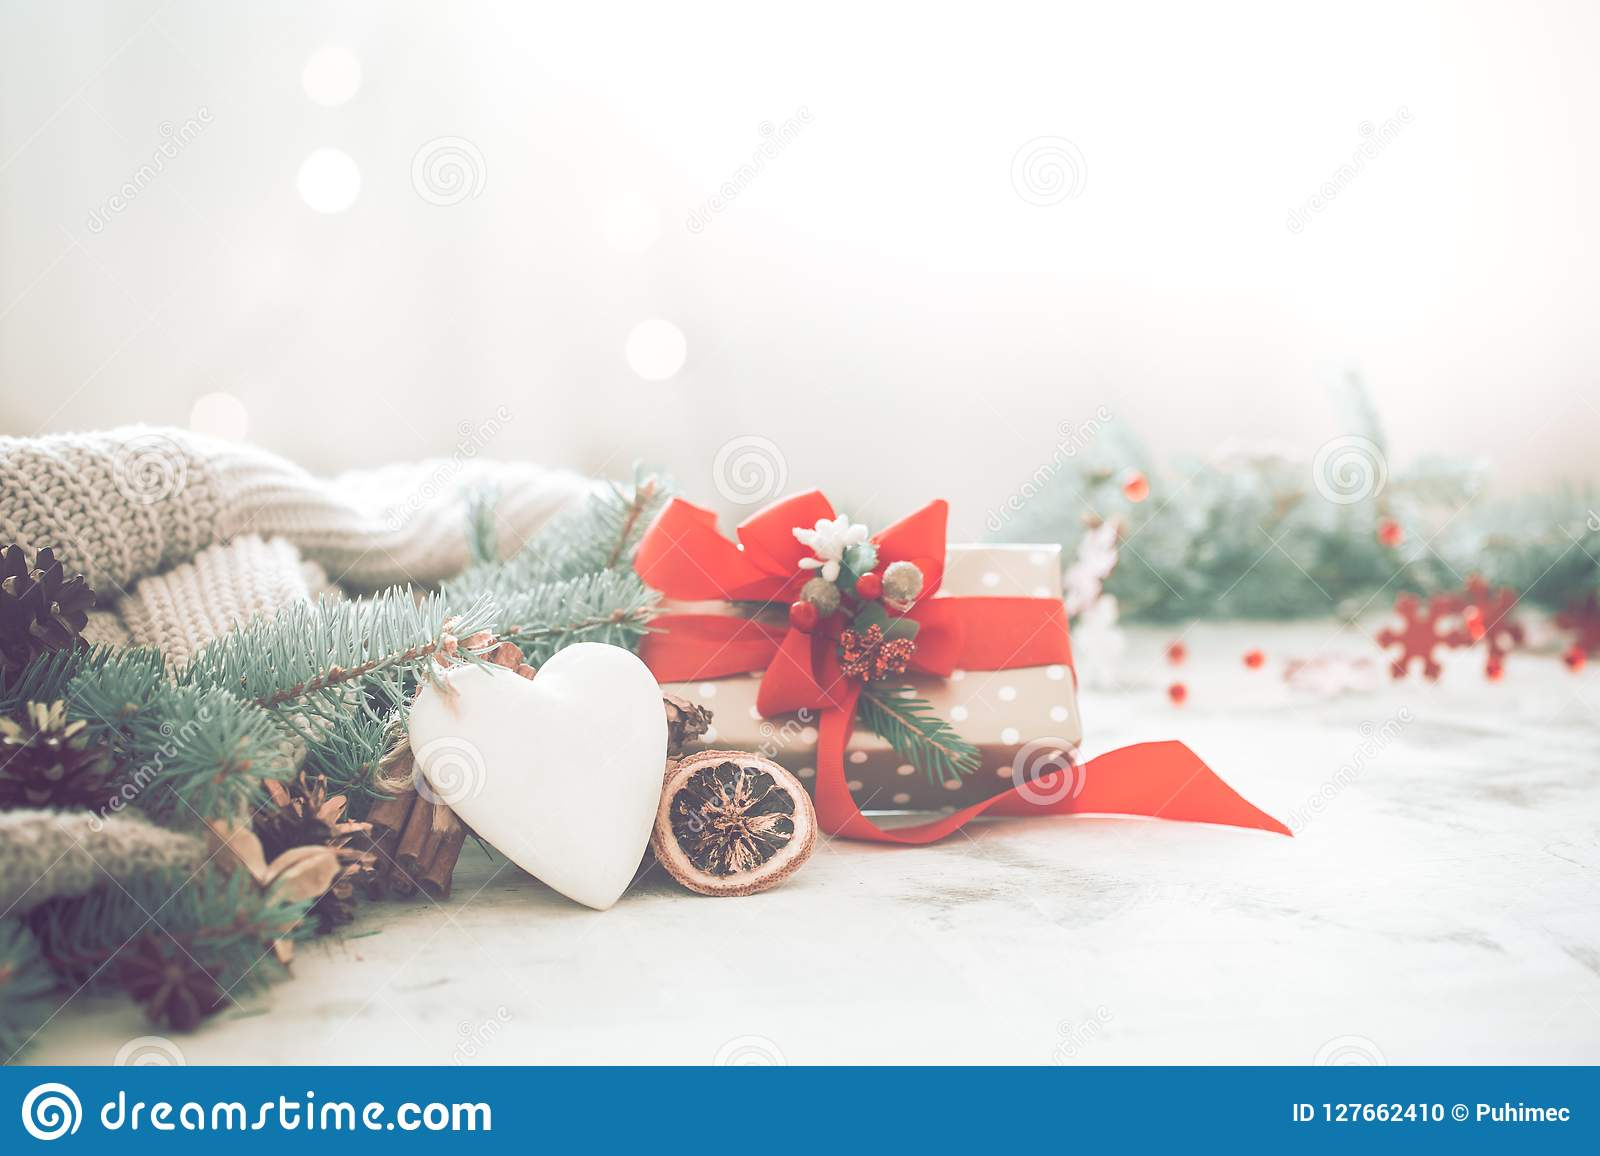 Festive Background With Heart And Gift, Christmas And Holiday Co ...